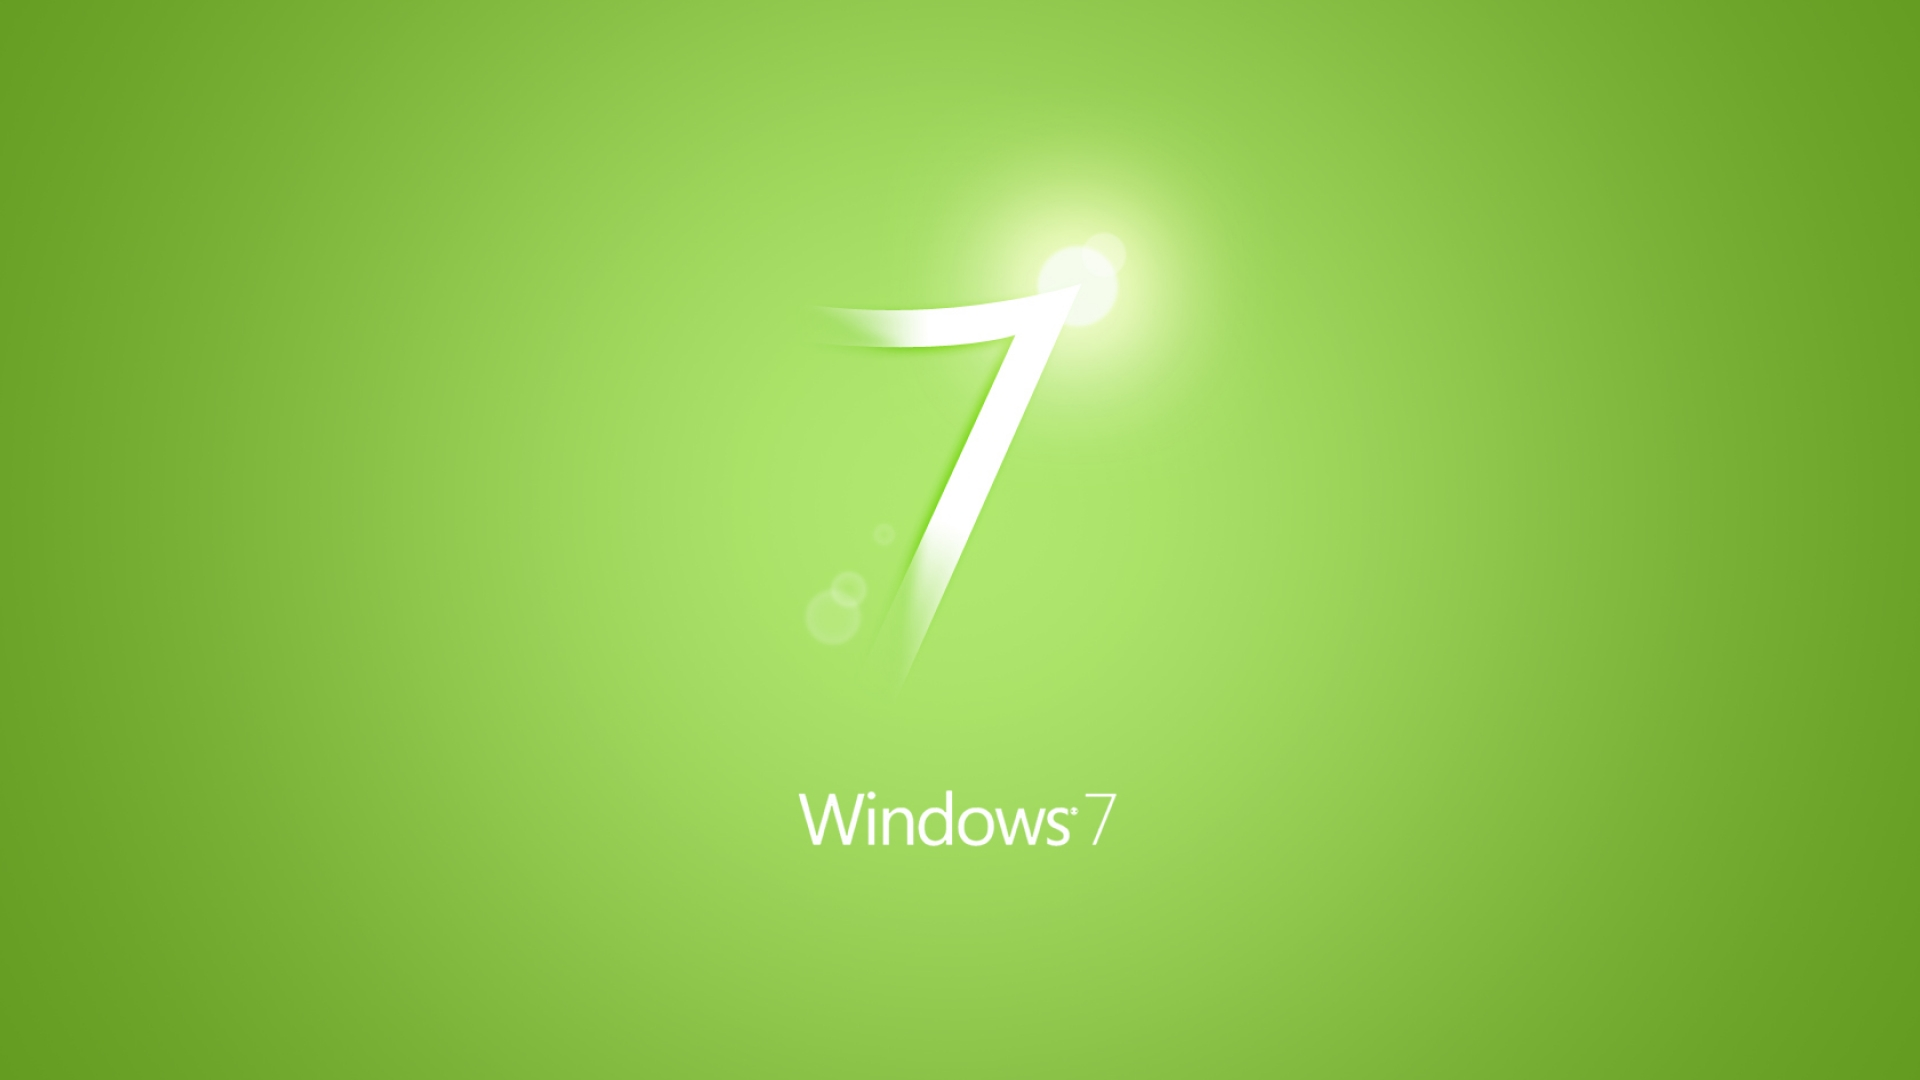 Simple green Windows 7 logo